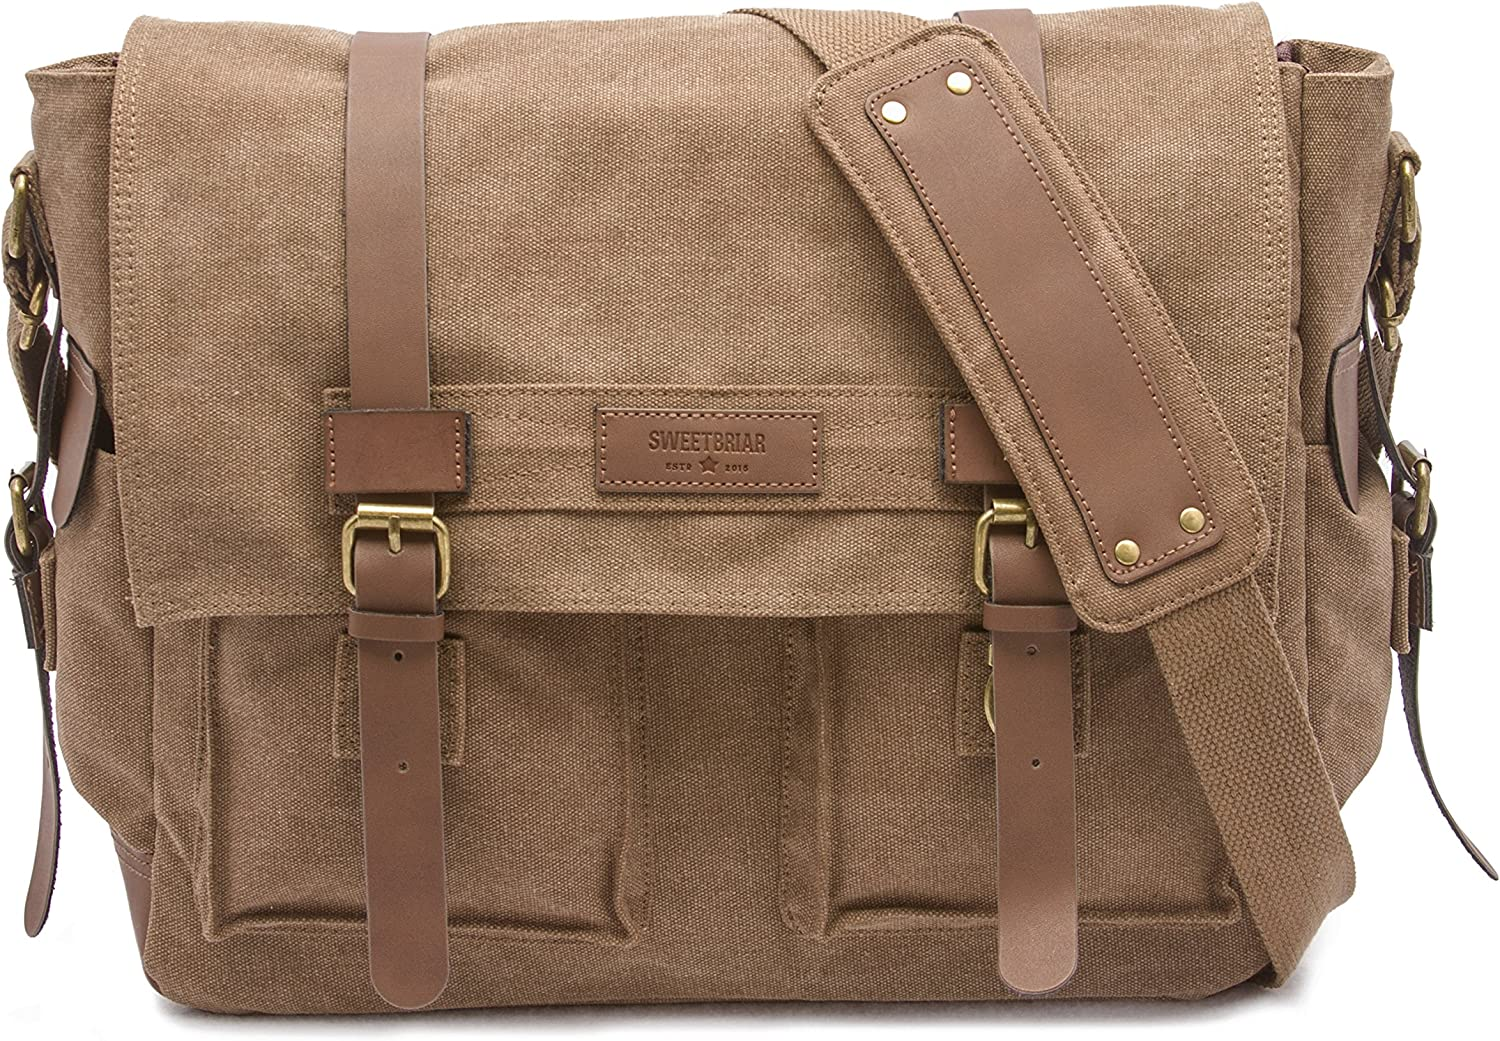 Sweetbriar Classic Laptop Messenger Bag, Brown - Canvas Pack Designed to Protect Laptops up to 15.6 Inches